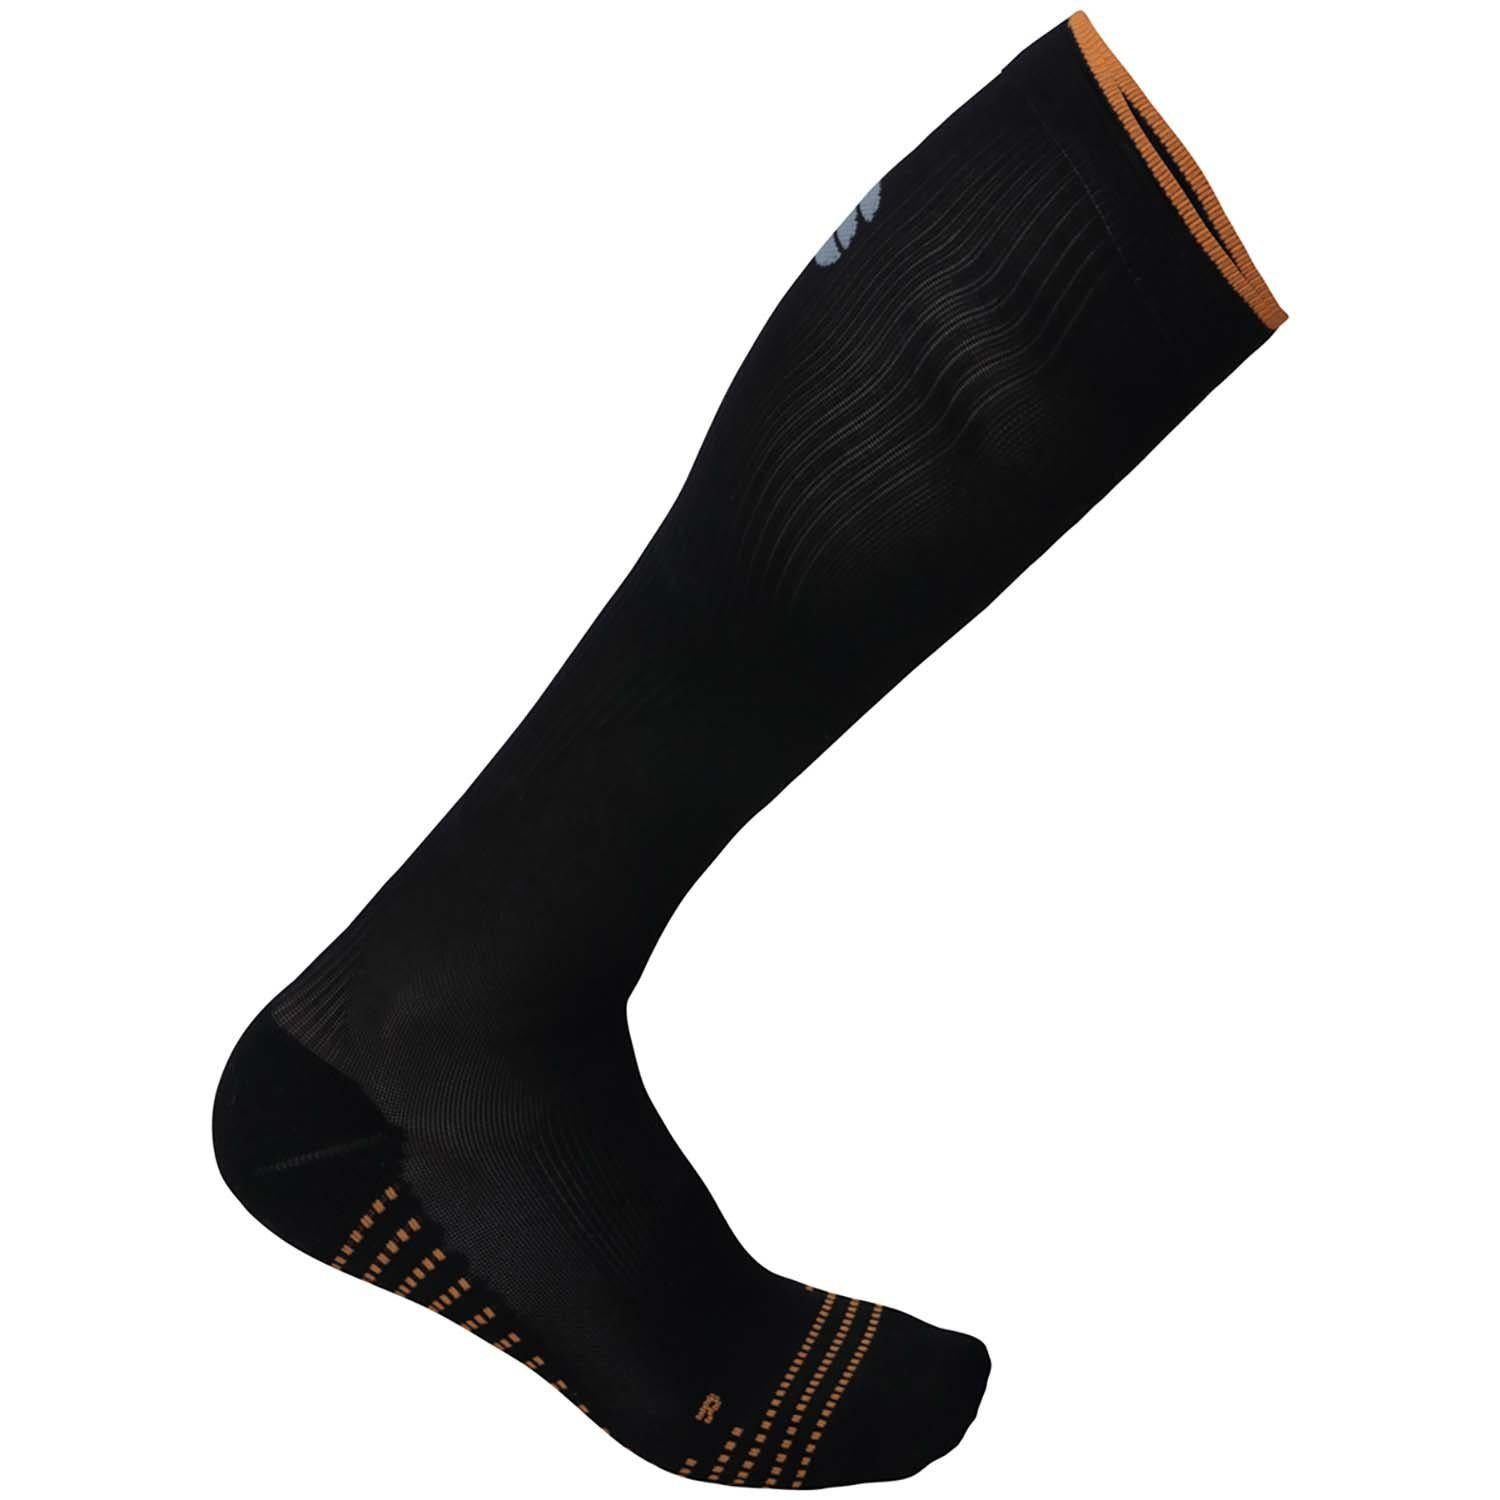 Sportful-Sportful Recovery Socks-Black/Orange SDR-S-SF020690022-saddleback-elite-performance-cycling